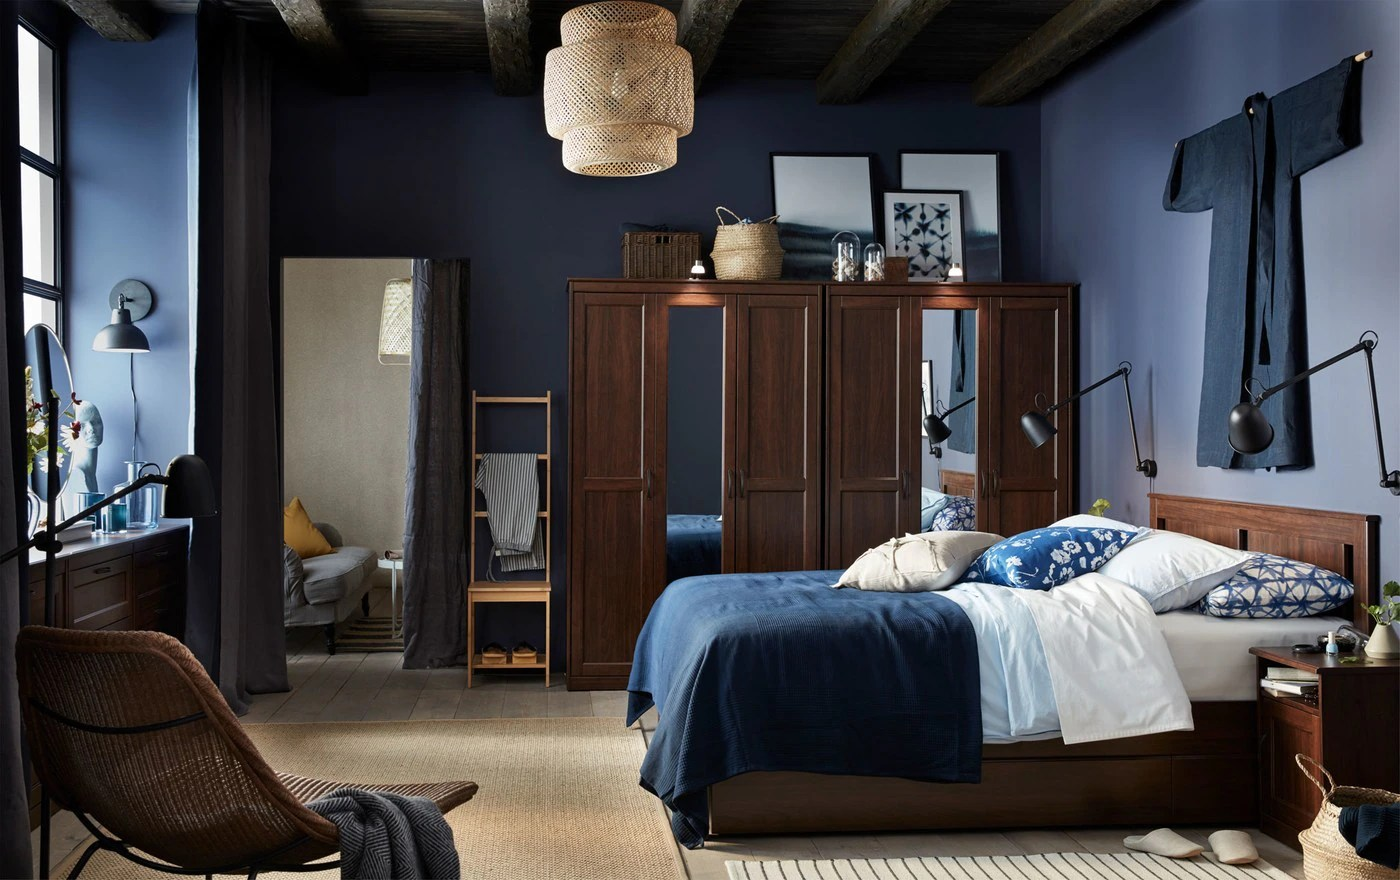 Biai42 Bedroom Ideas At Ikea Today 2020 09 07 Download Here